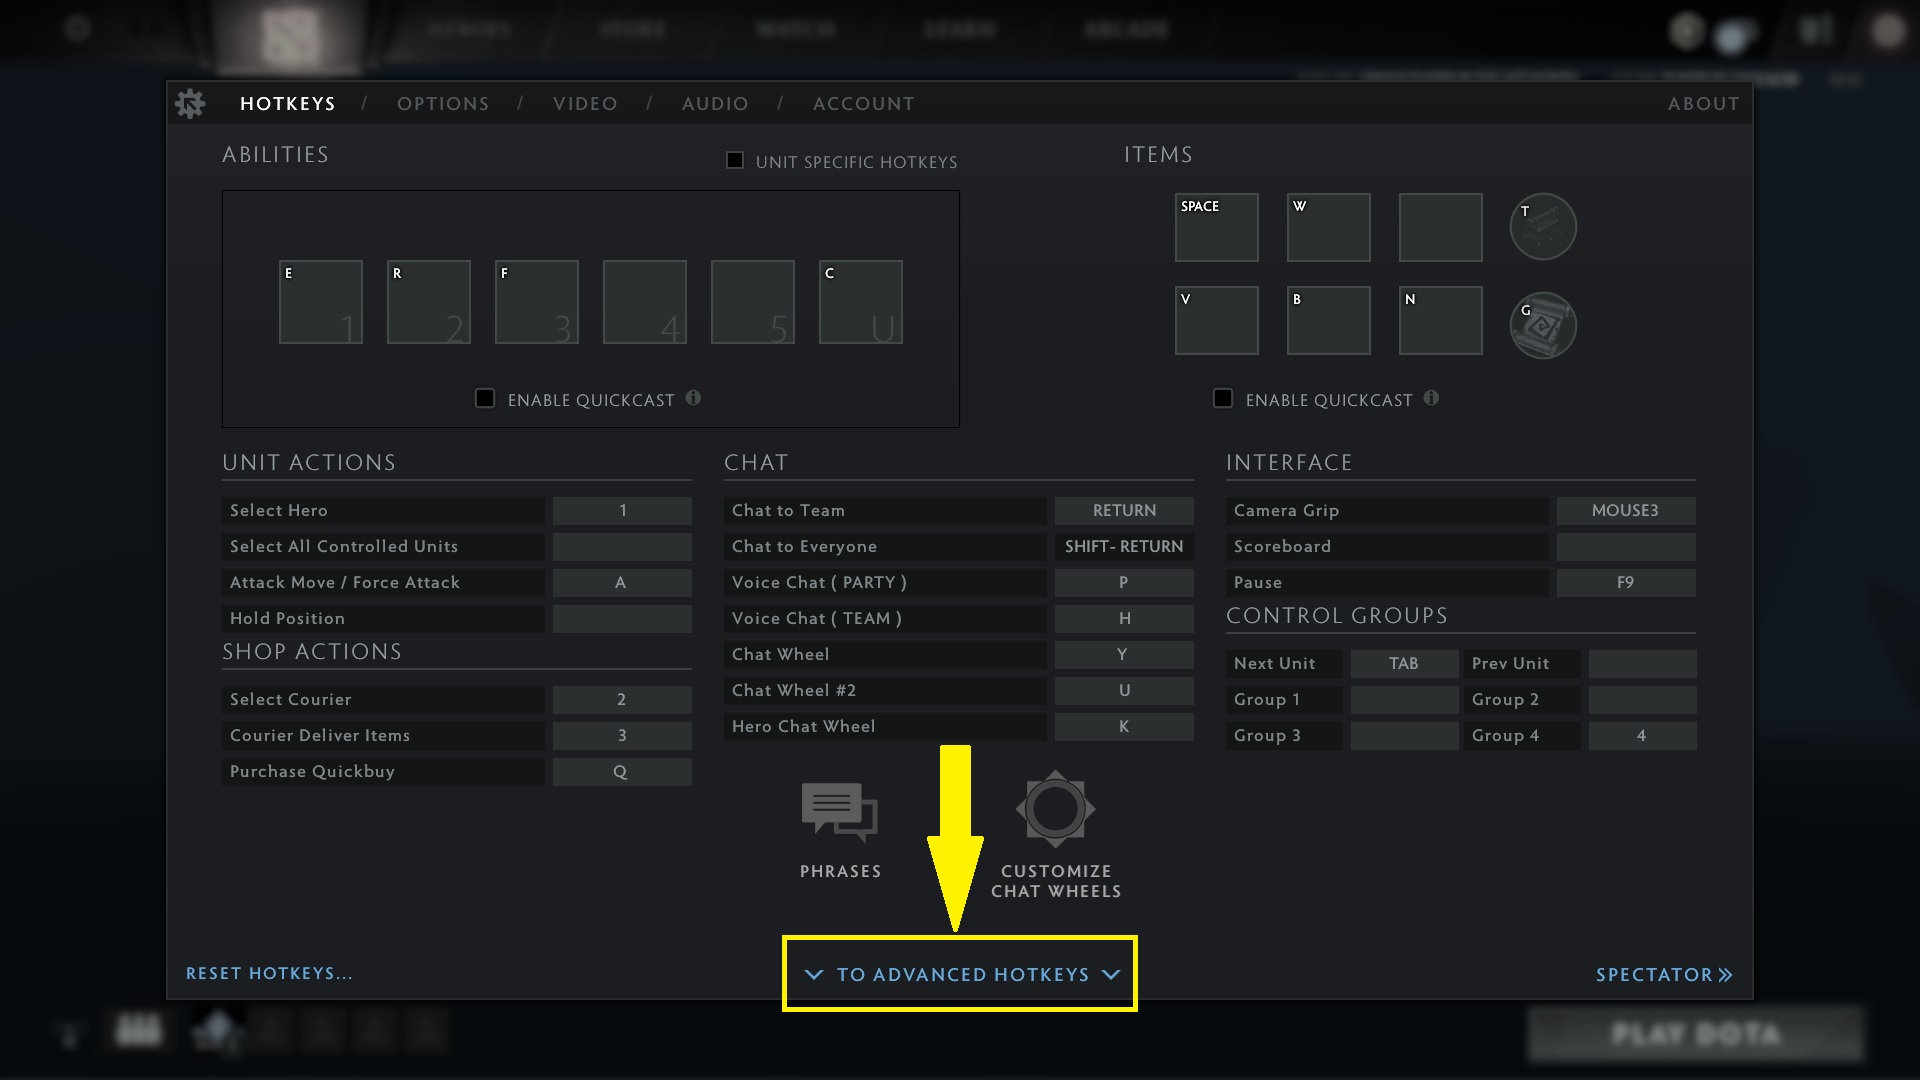 Dota 2 Hotkeys settings